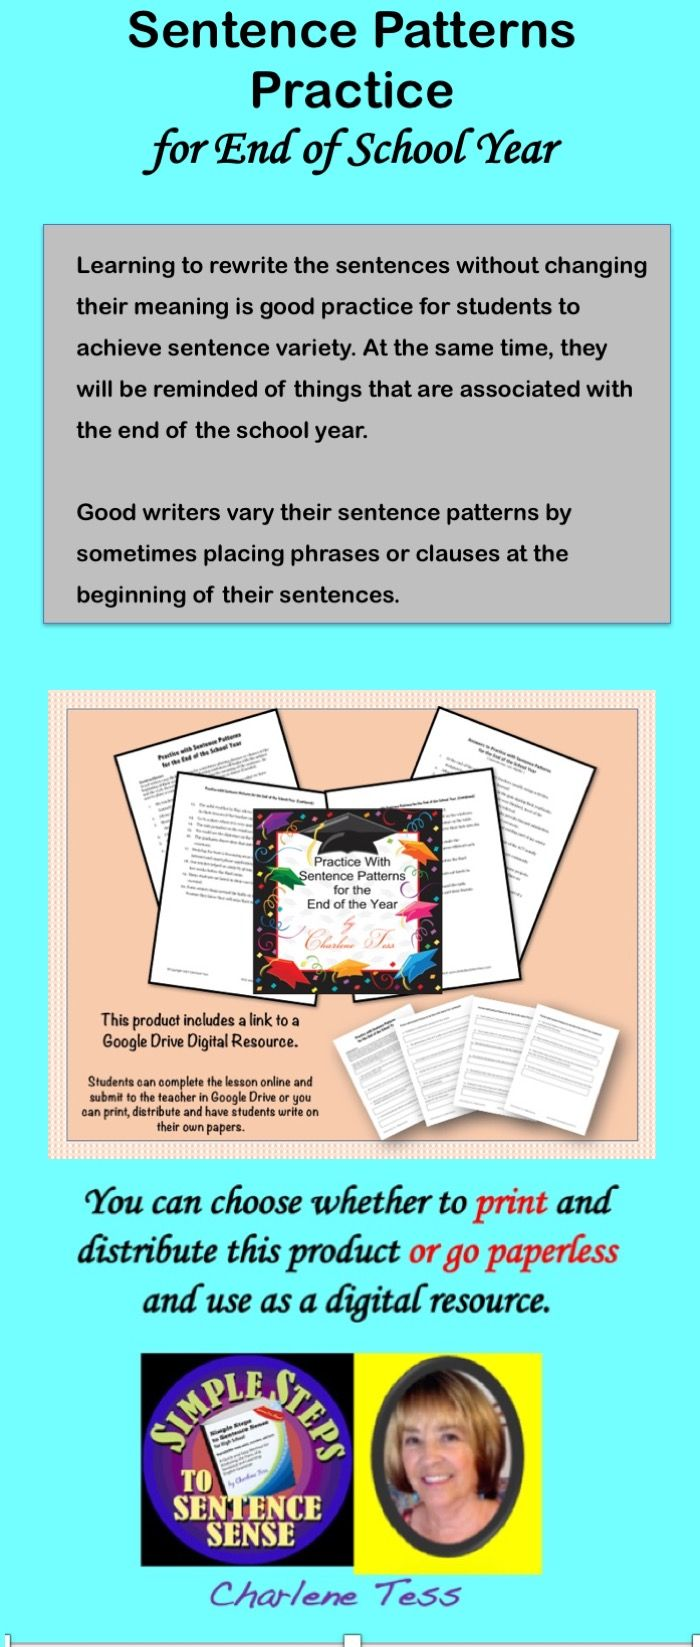 Sentence Combining using phrases and clauses. #google #googleapps #googledrive #paperless